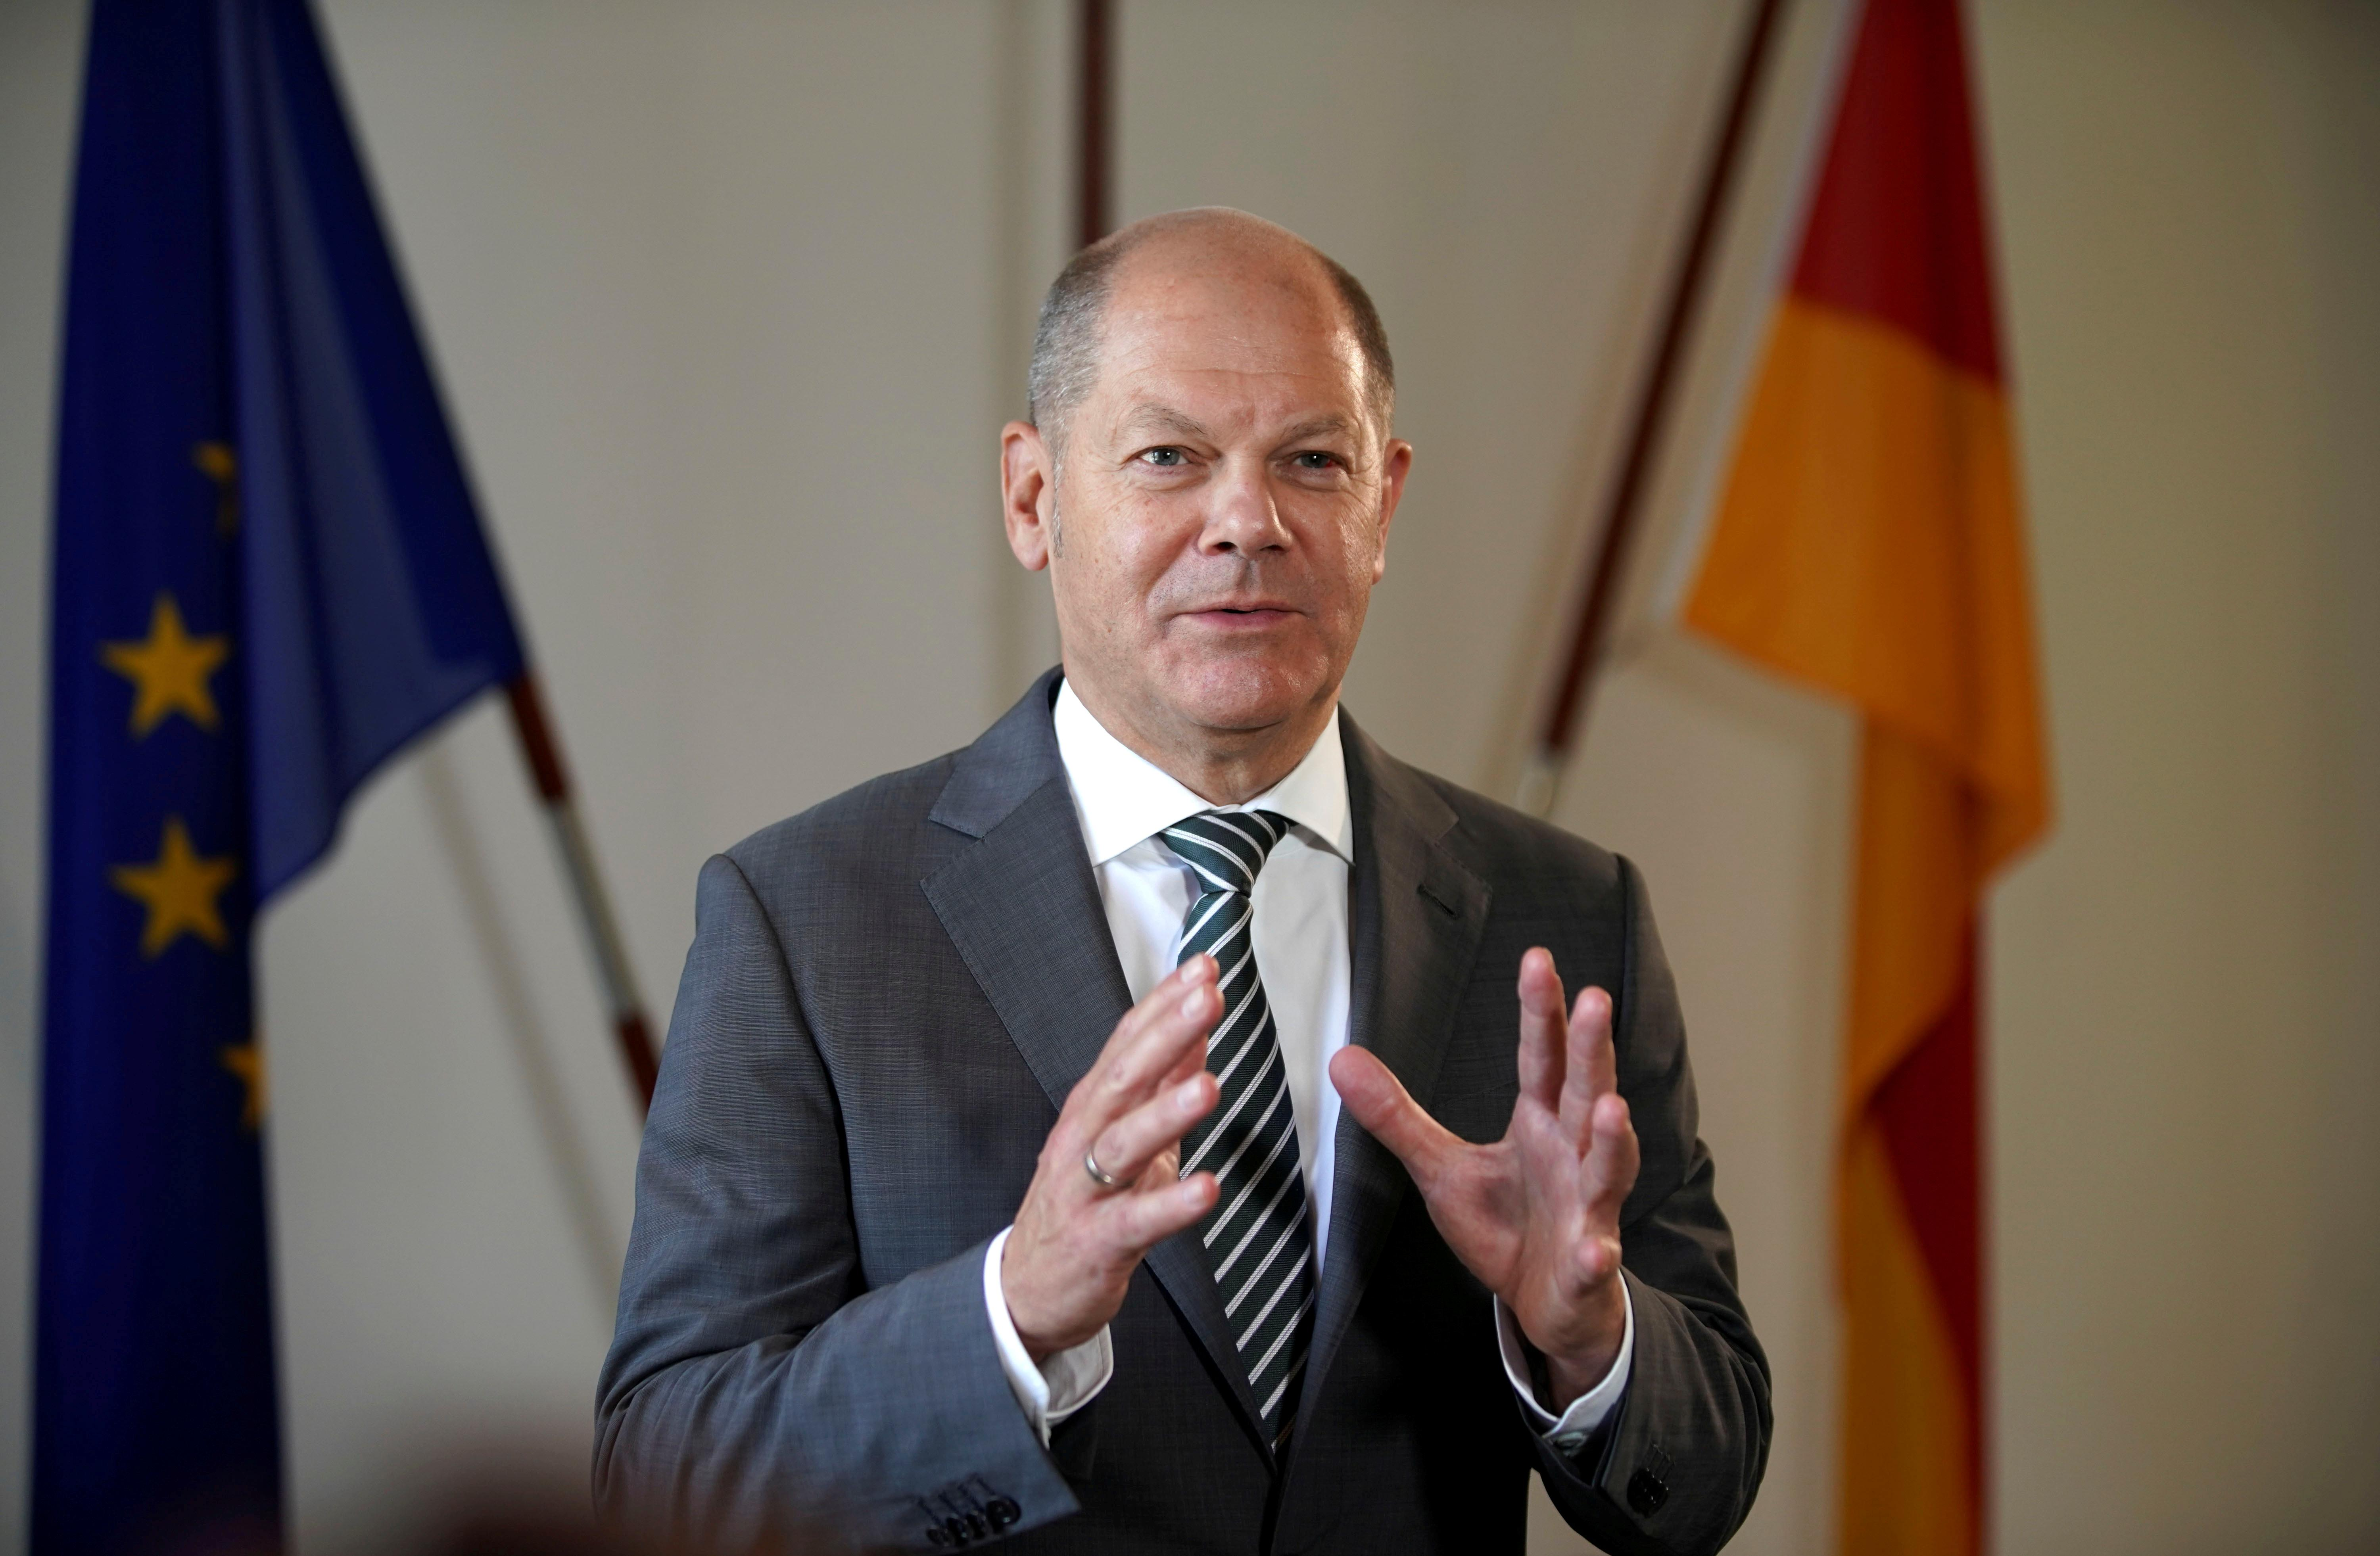 EU27 ready for all Brexit scenarios, German finance minister Scholz says